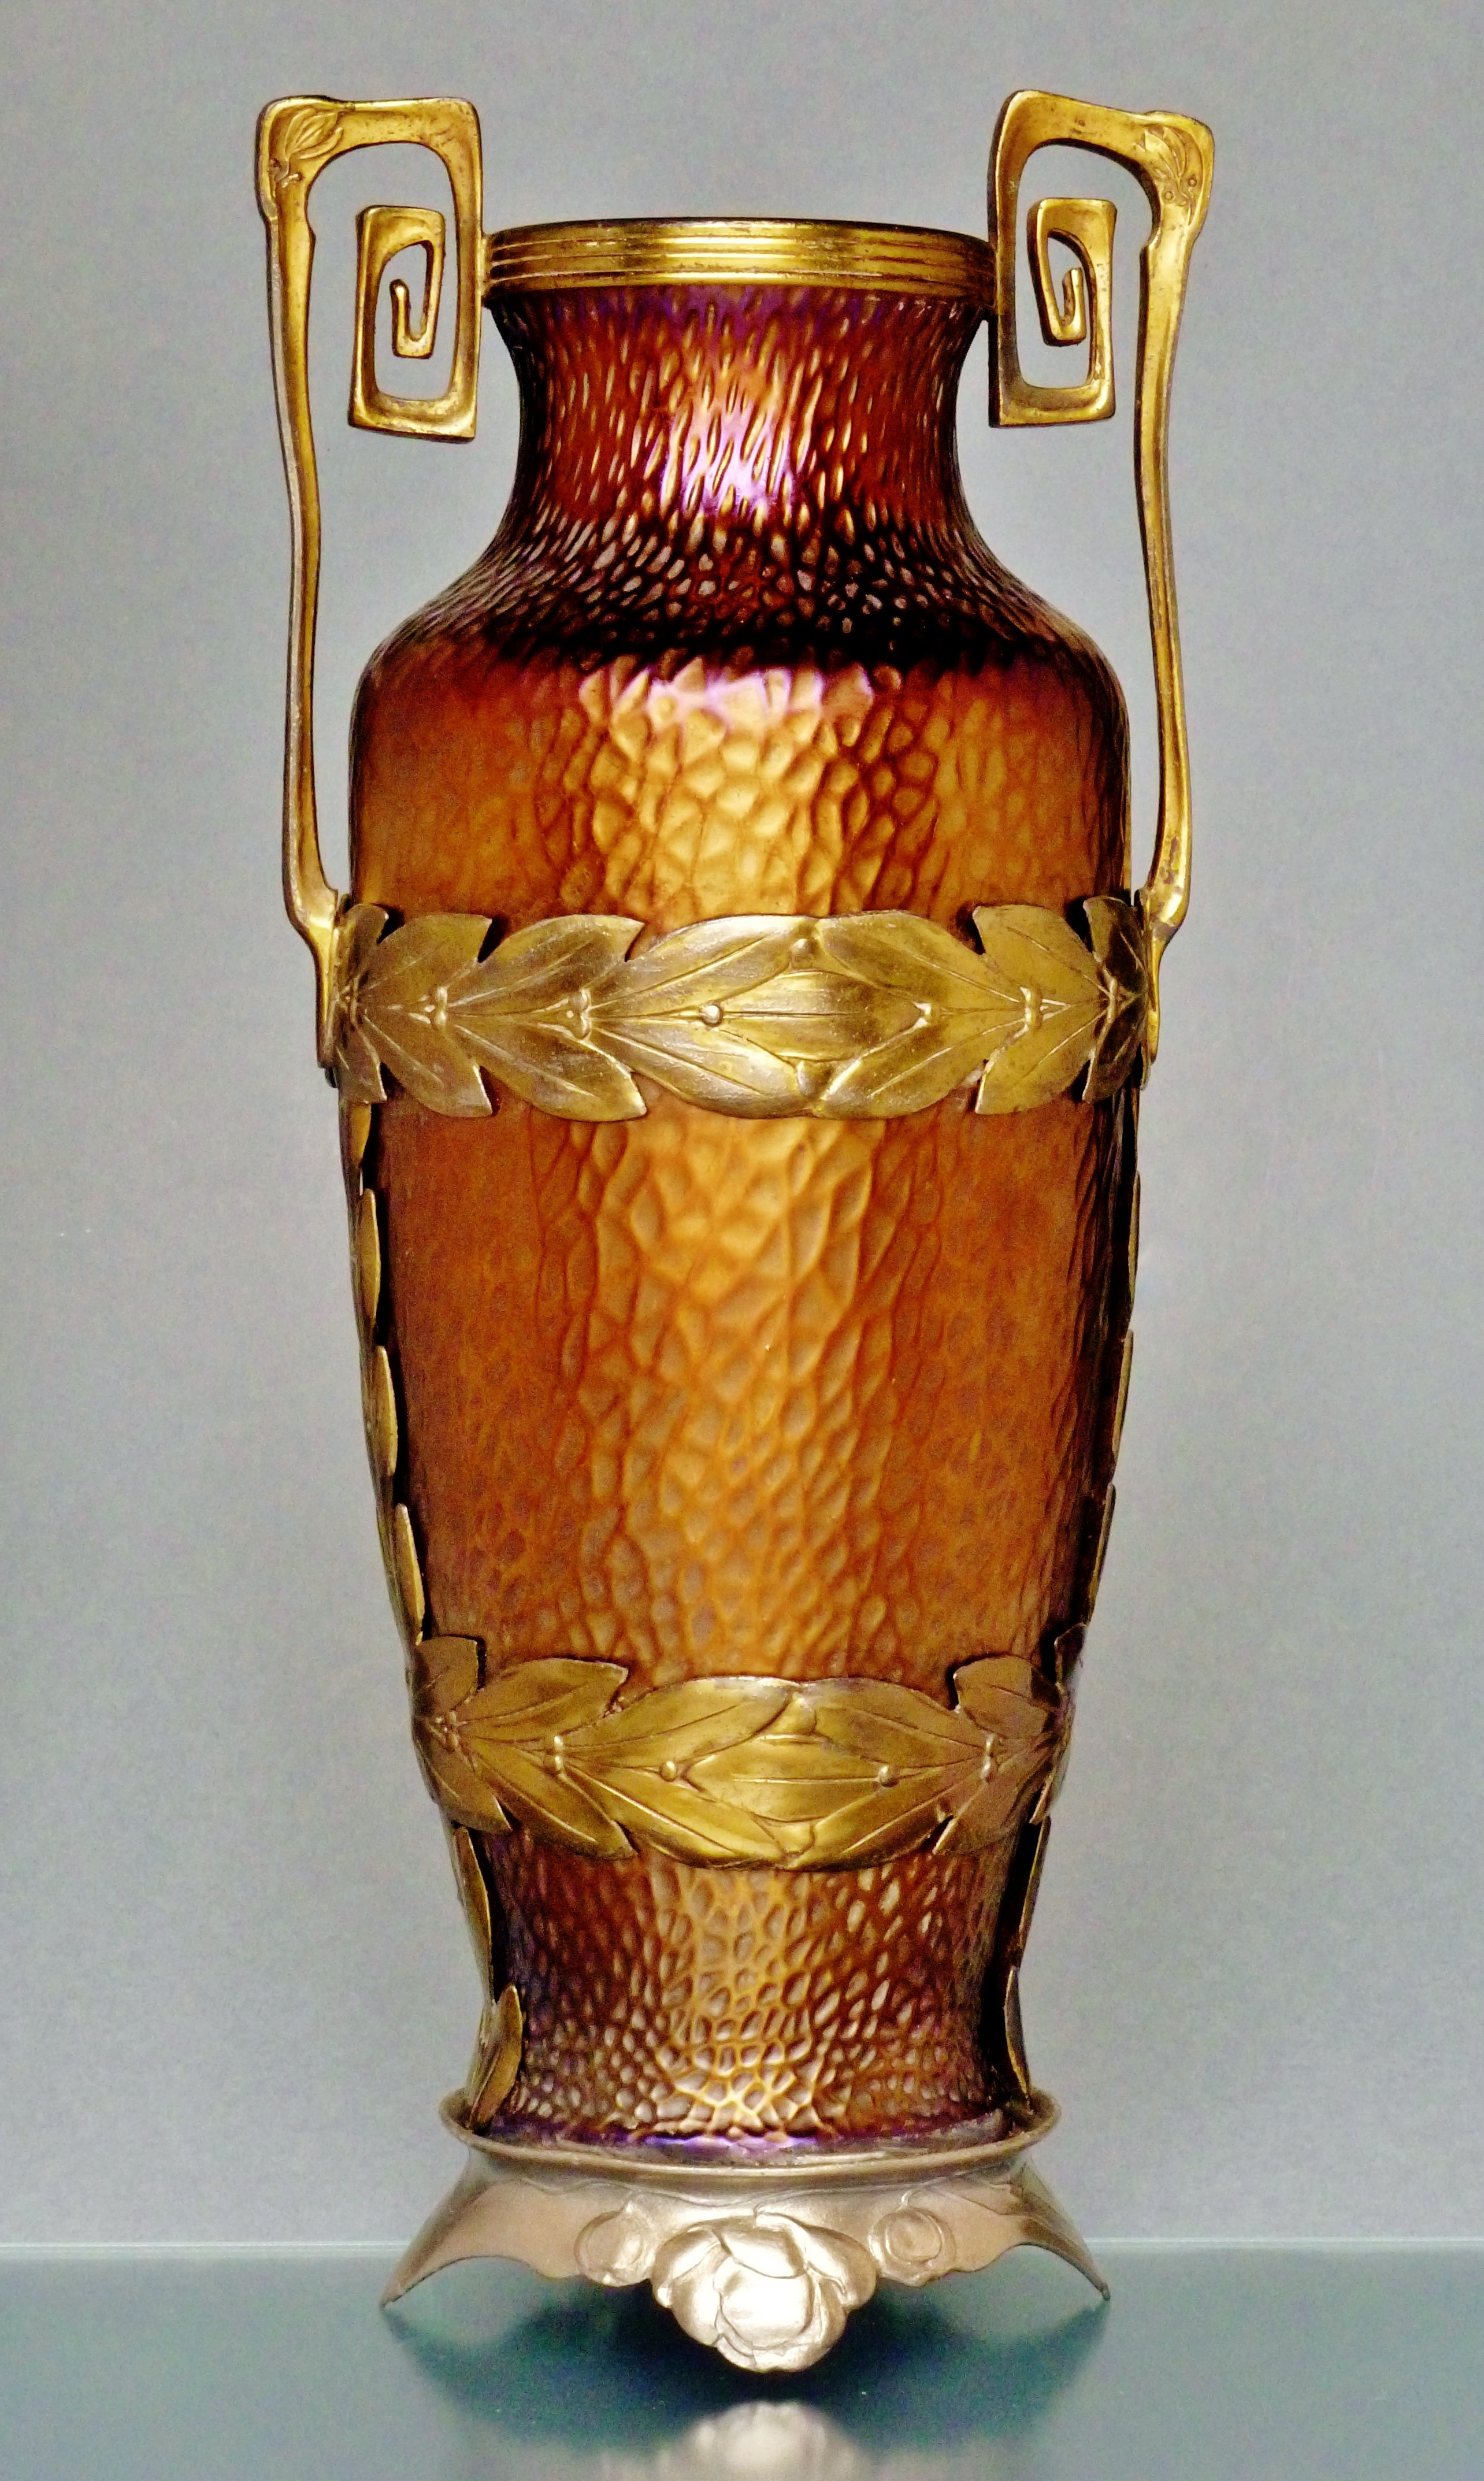 Wilhelm kralik glass vase c 1905 in brass mounting van hauten wilhelm kralik glass vase c 1905 in brass mounting van hauten reviewsmspy